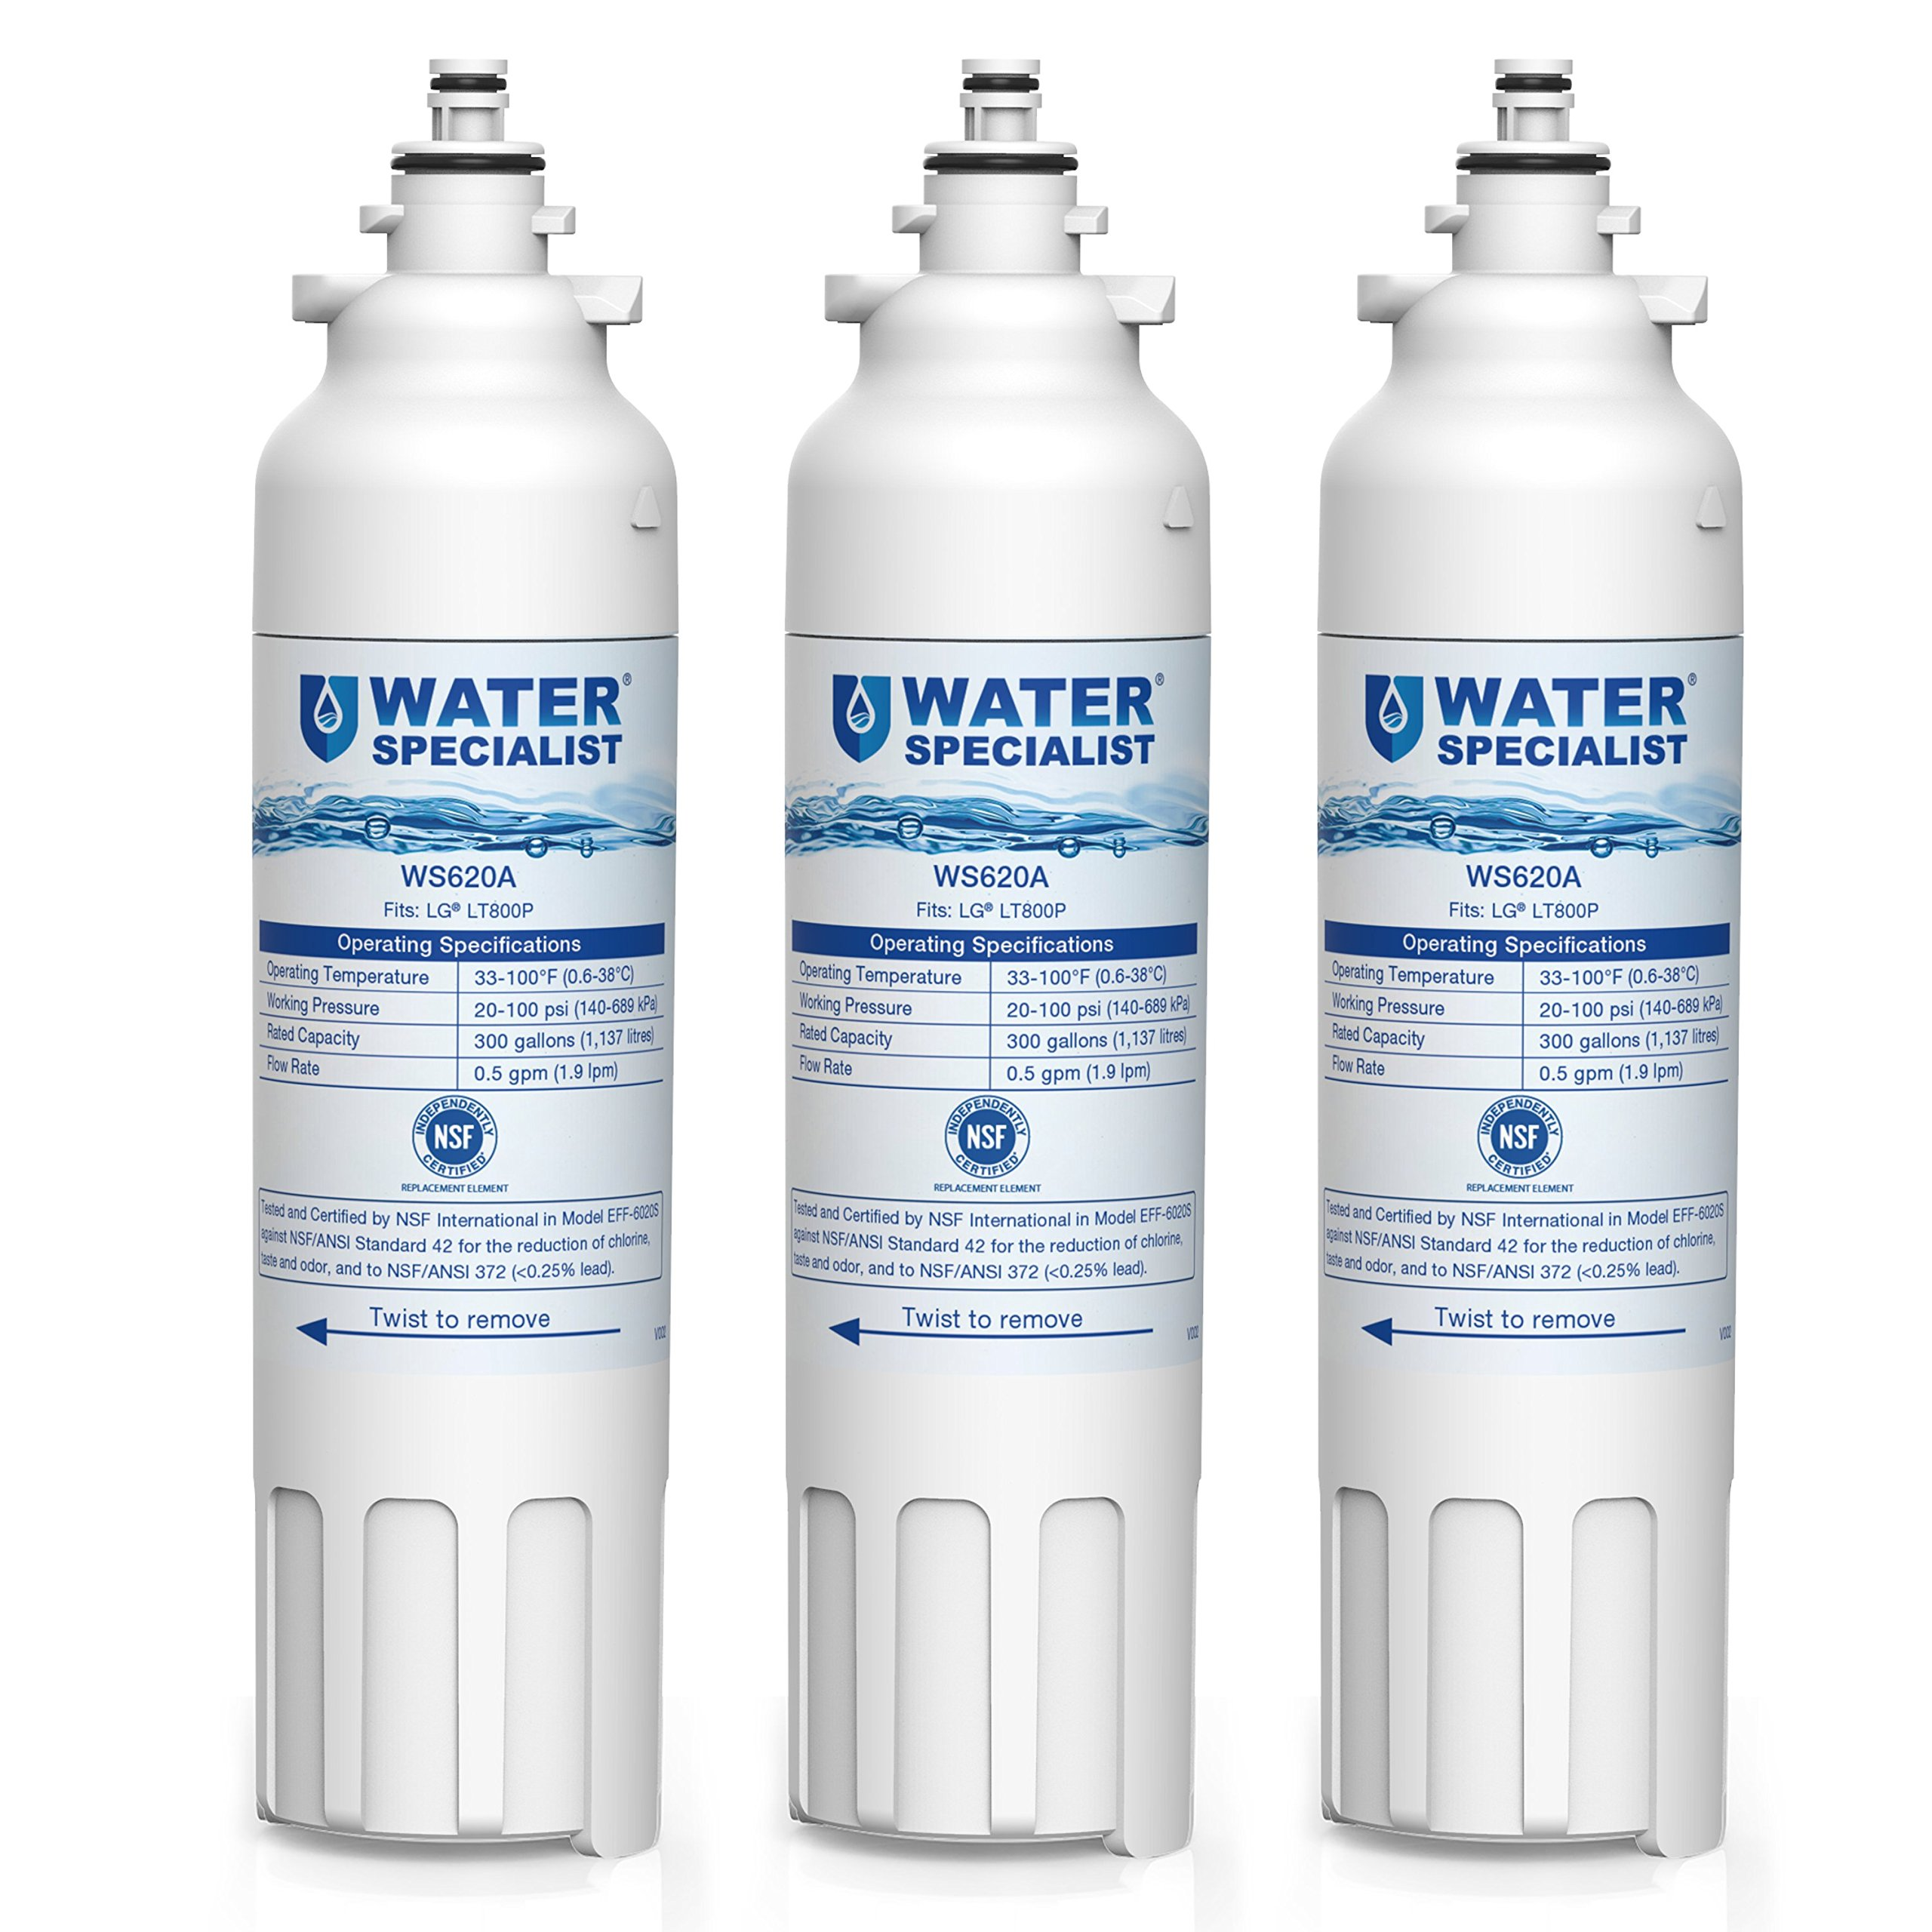 Waterspecialist LT800P Replacement Refrigerator Water Filter, Compatible with LG LT800P, Kenmore 9490, ADQ73613401, LSXS26326S, LMXC23746S, WF-LT800P, 469490, LMXC23746D, ADQ73613402, 46-9490, 3 Pack